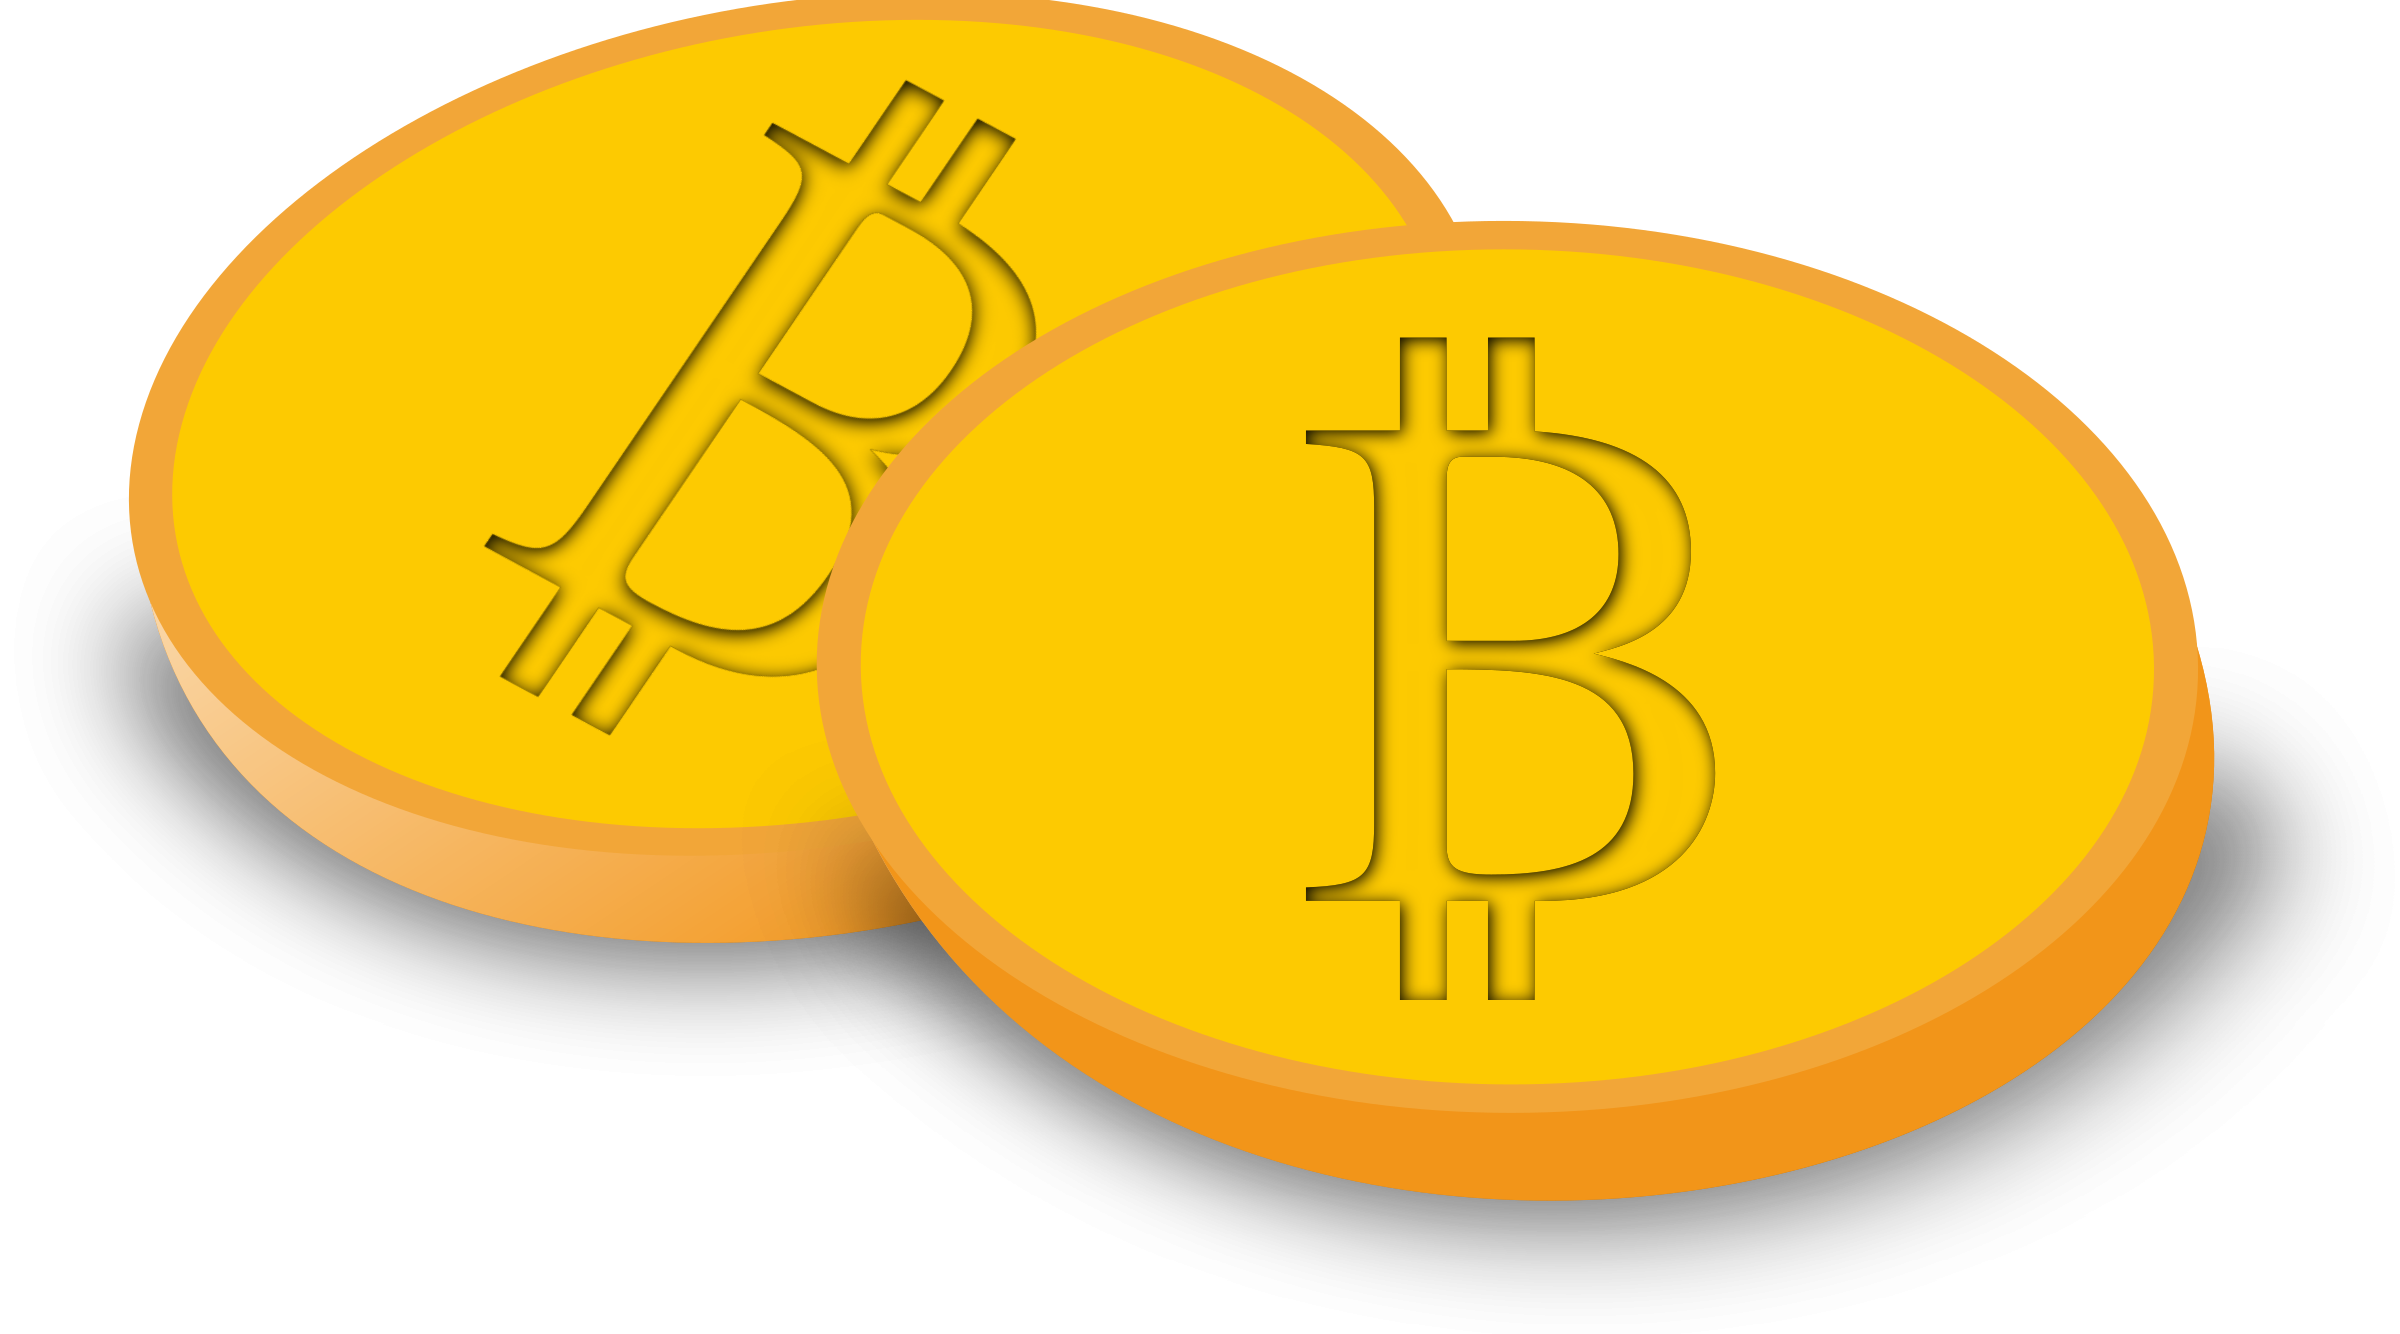 Coin clipart yellow, Coin yellow Transparent FREE for.